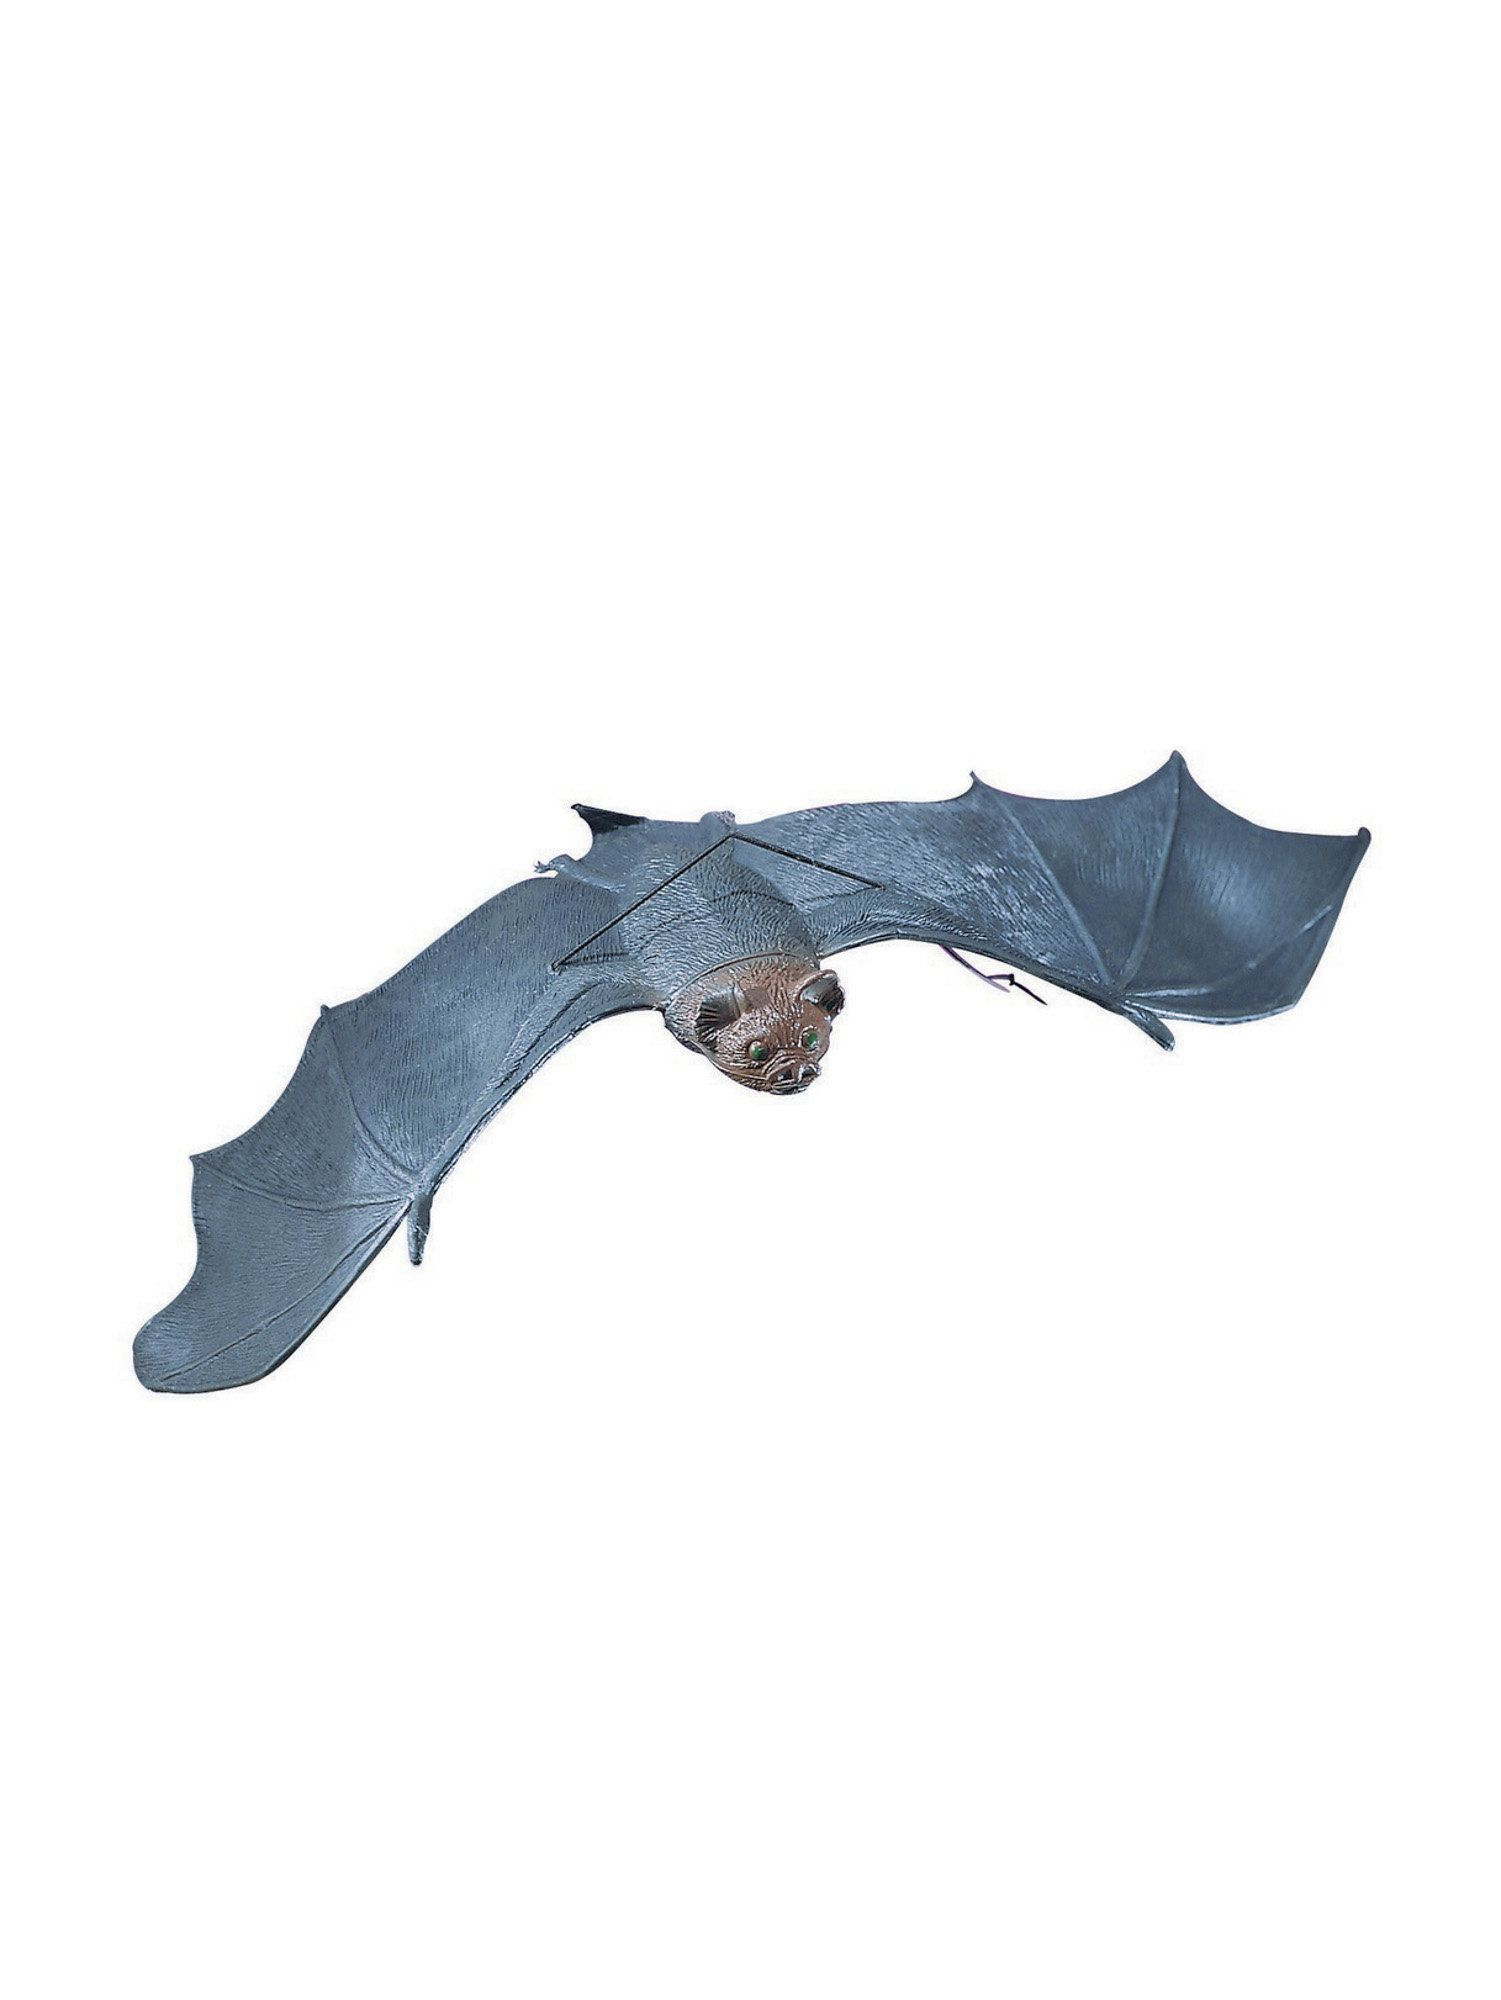 rubber bat - halloween decorations for 2018 | wholesale halloween